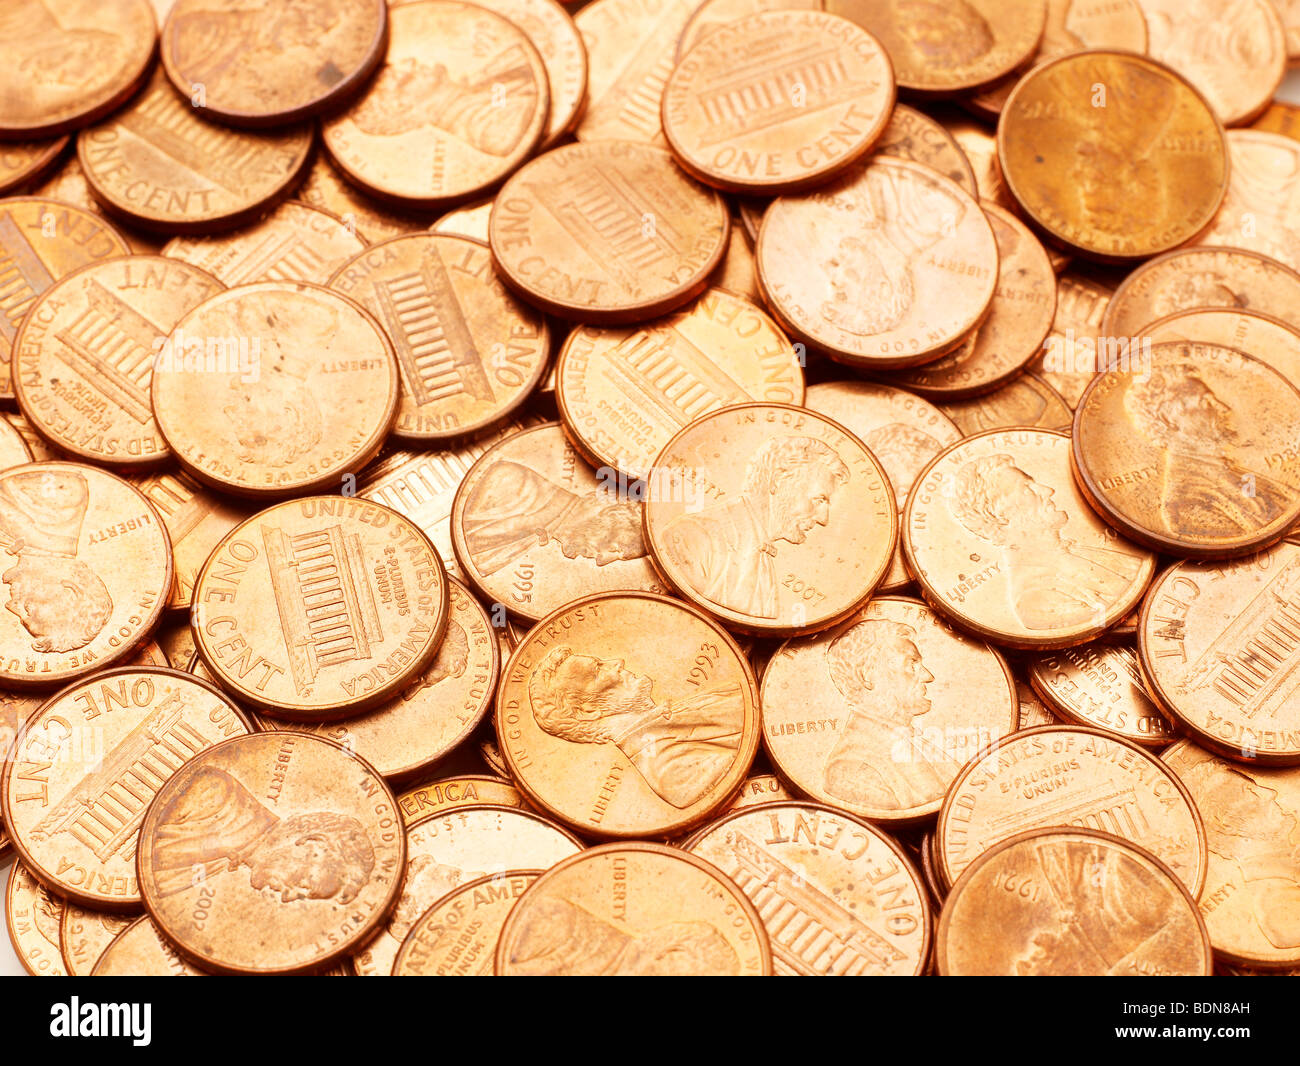 U.S. Coins Pennies Stock Photo